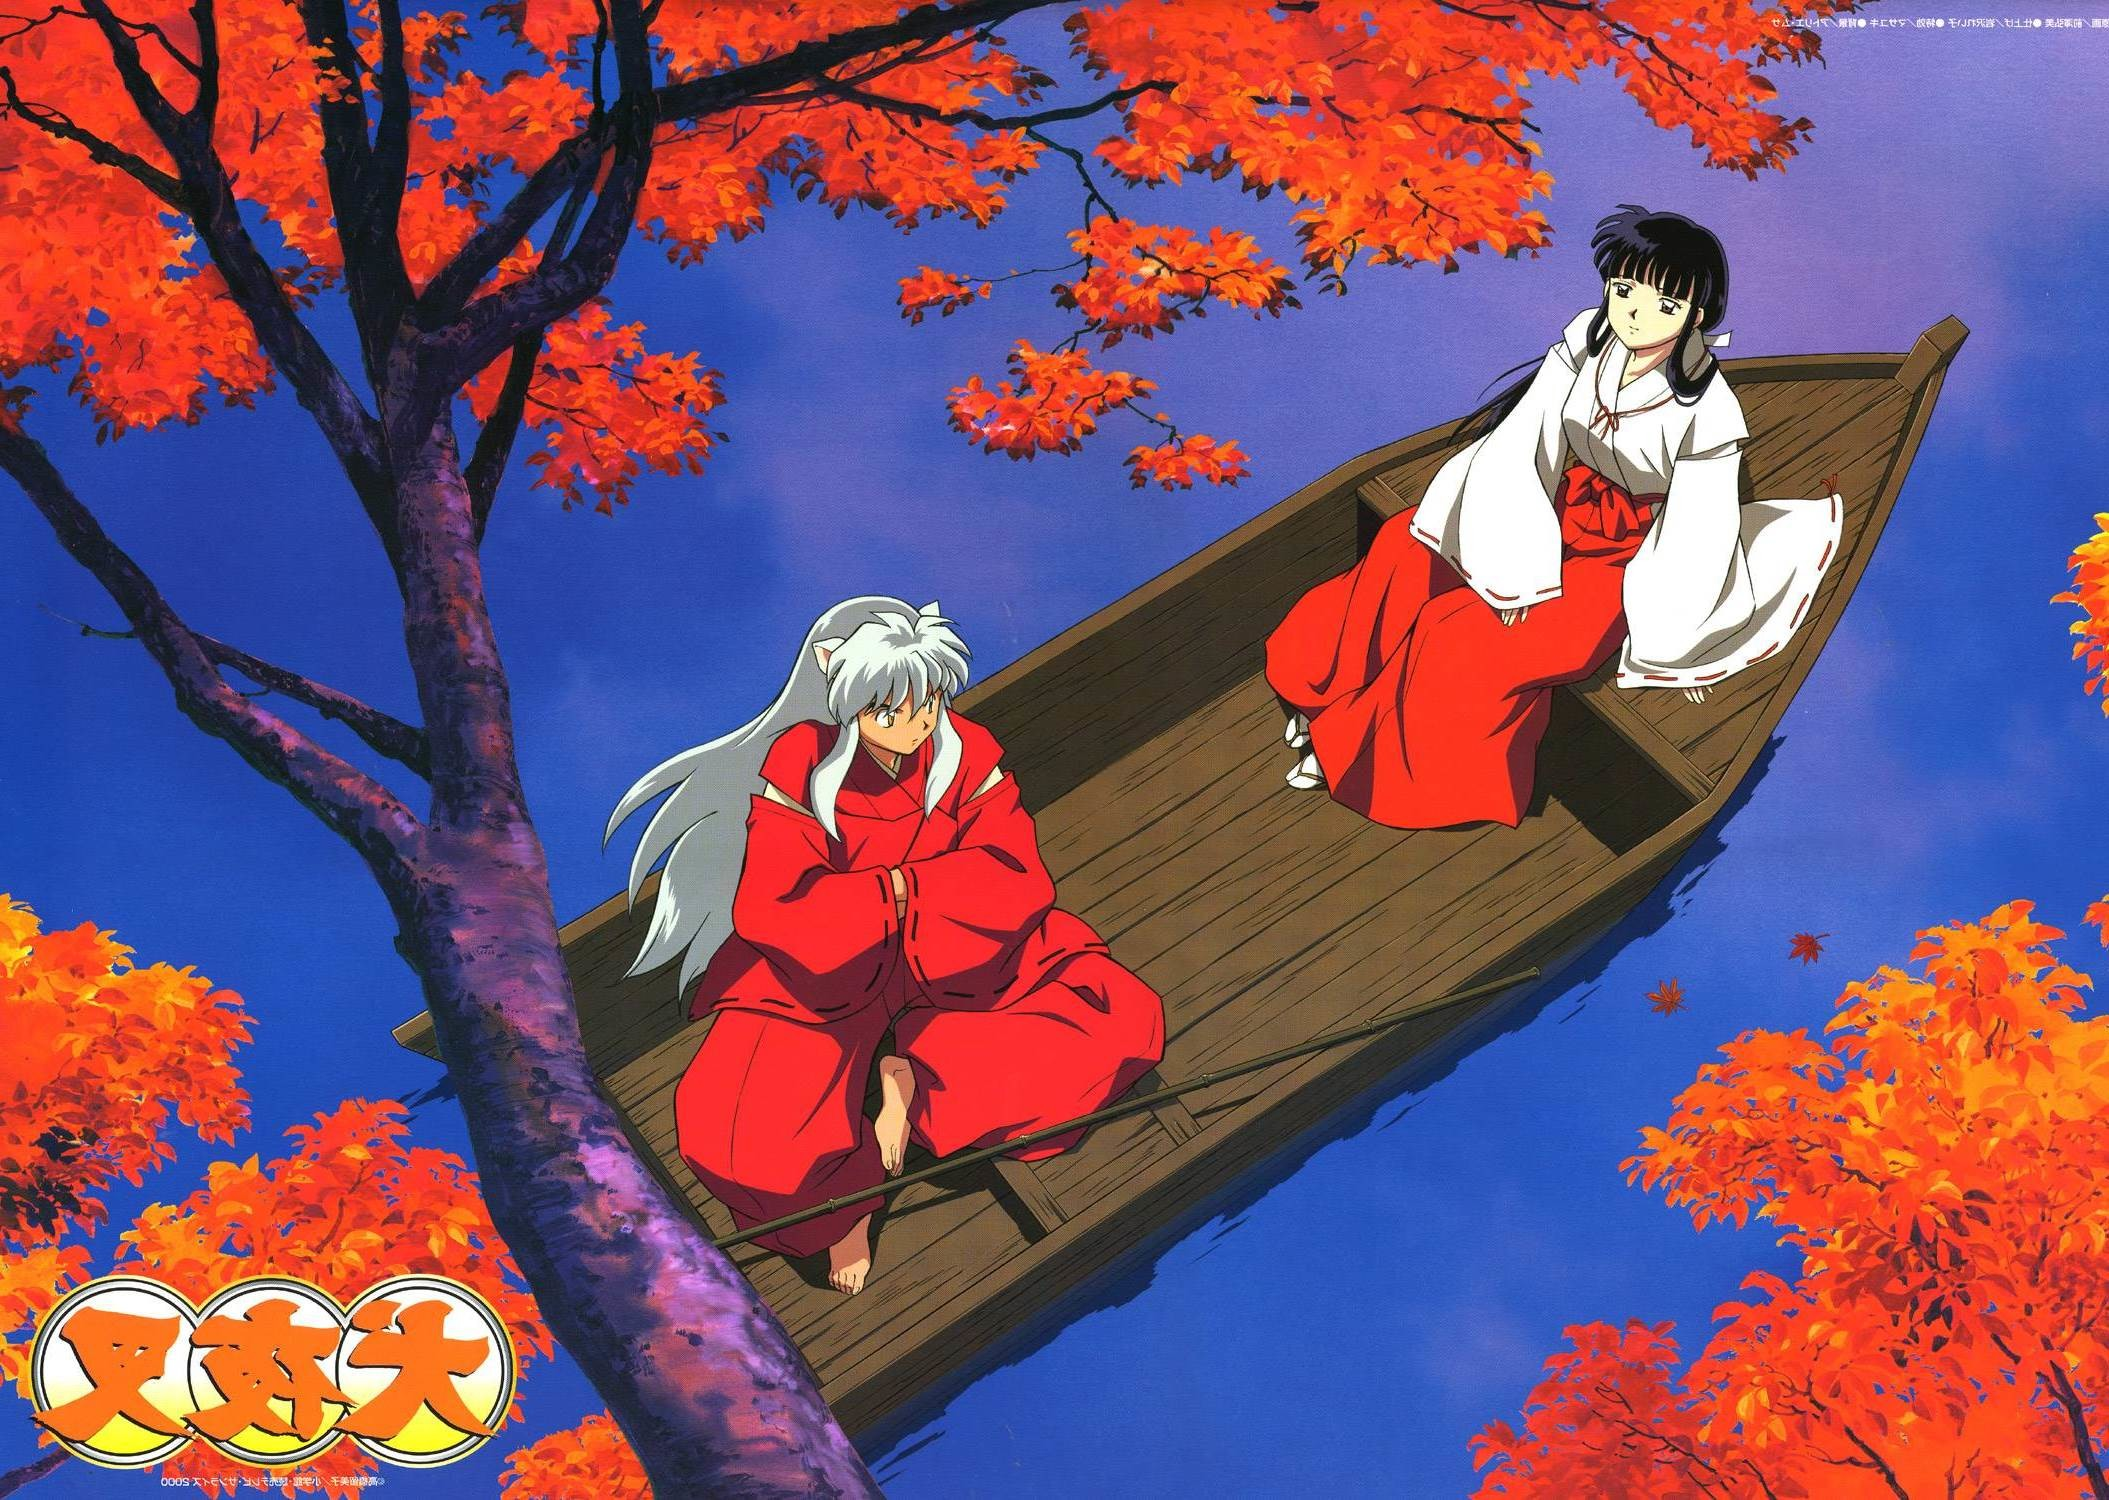 2109x1500 Inuyasha Wallpaper Free Download Inuyasha Wallpaper Full HD